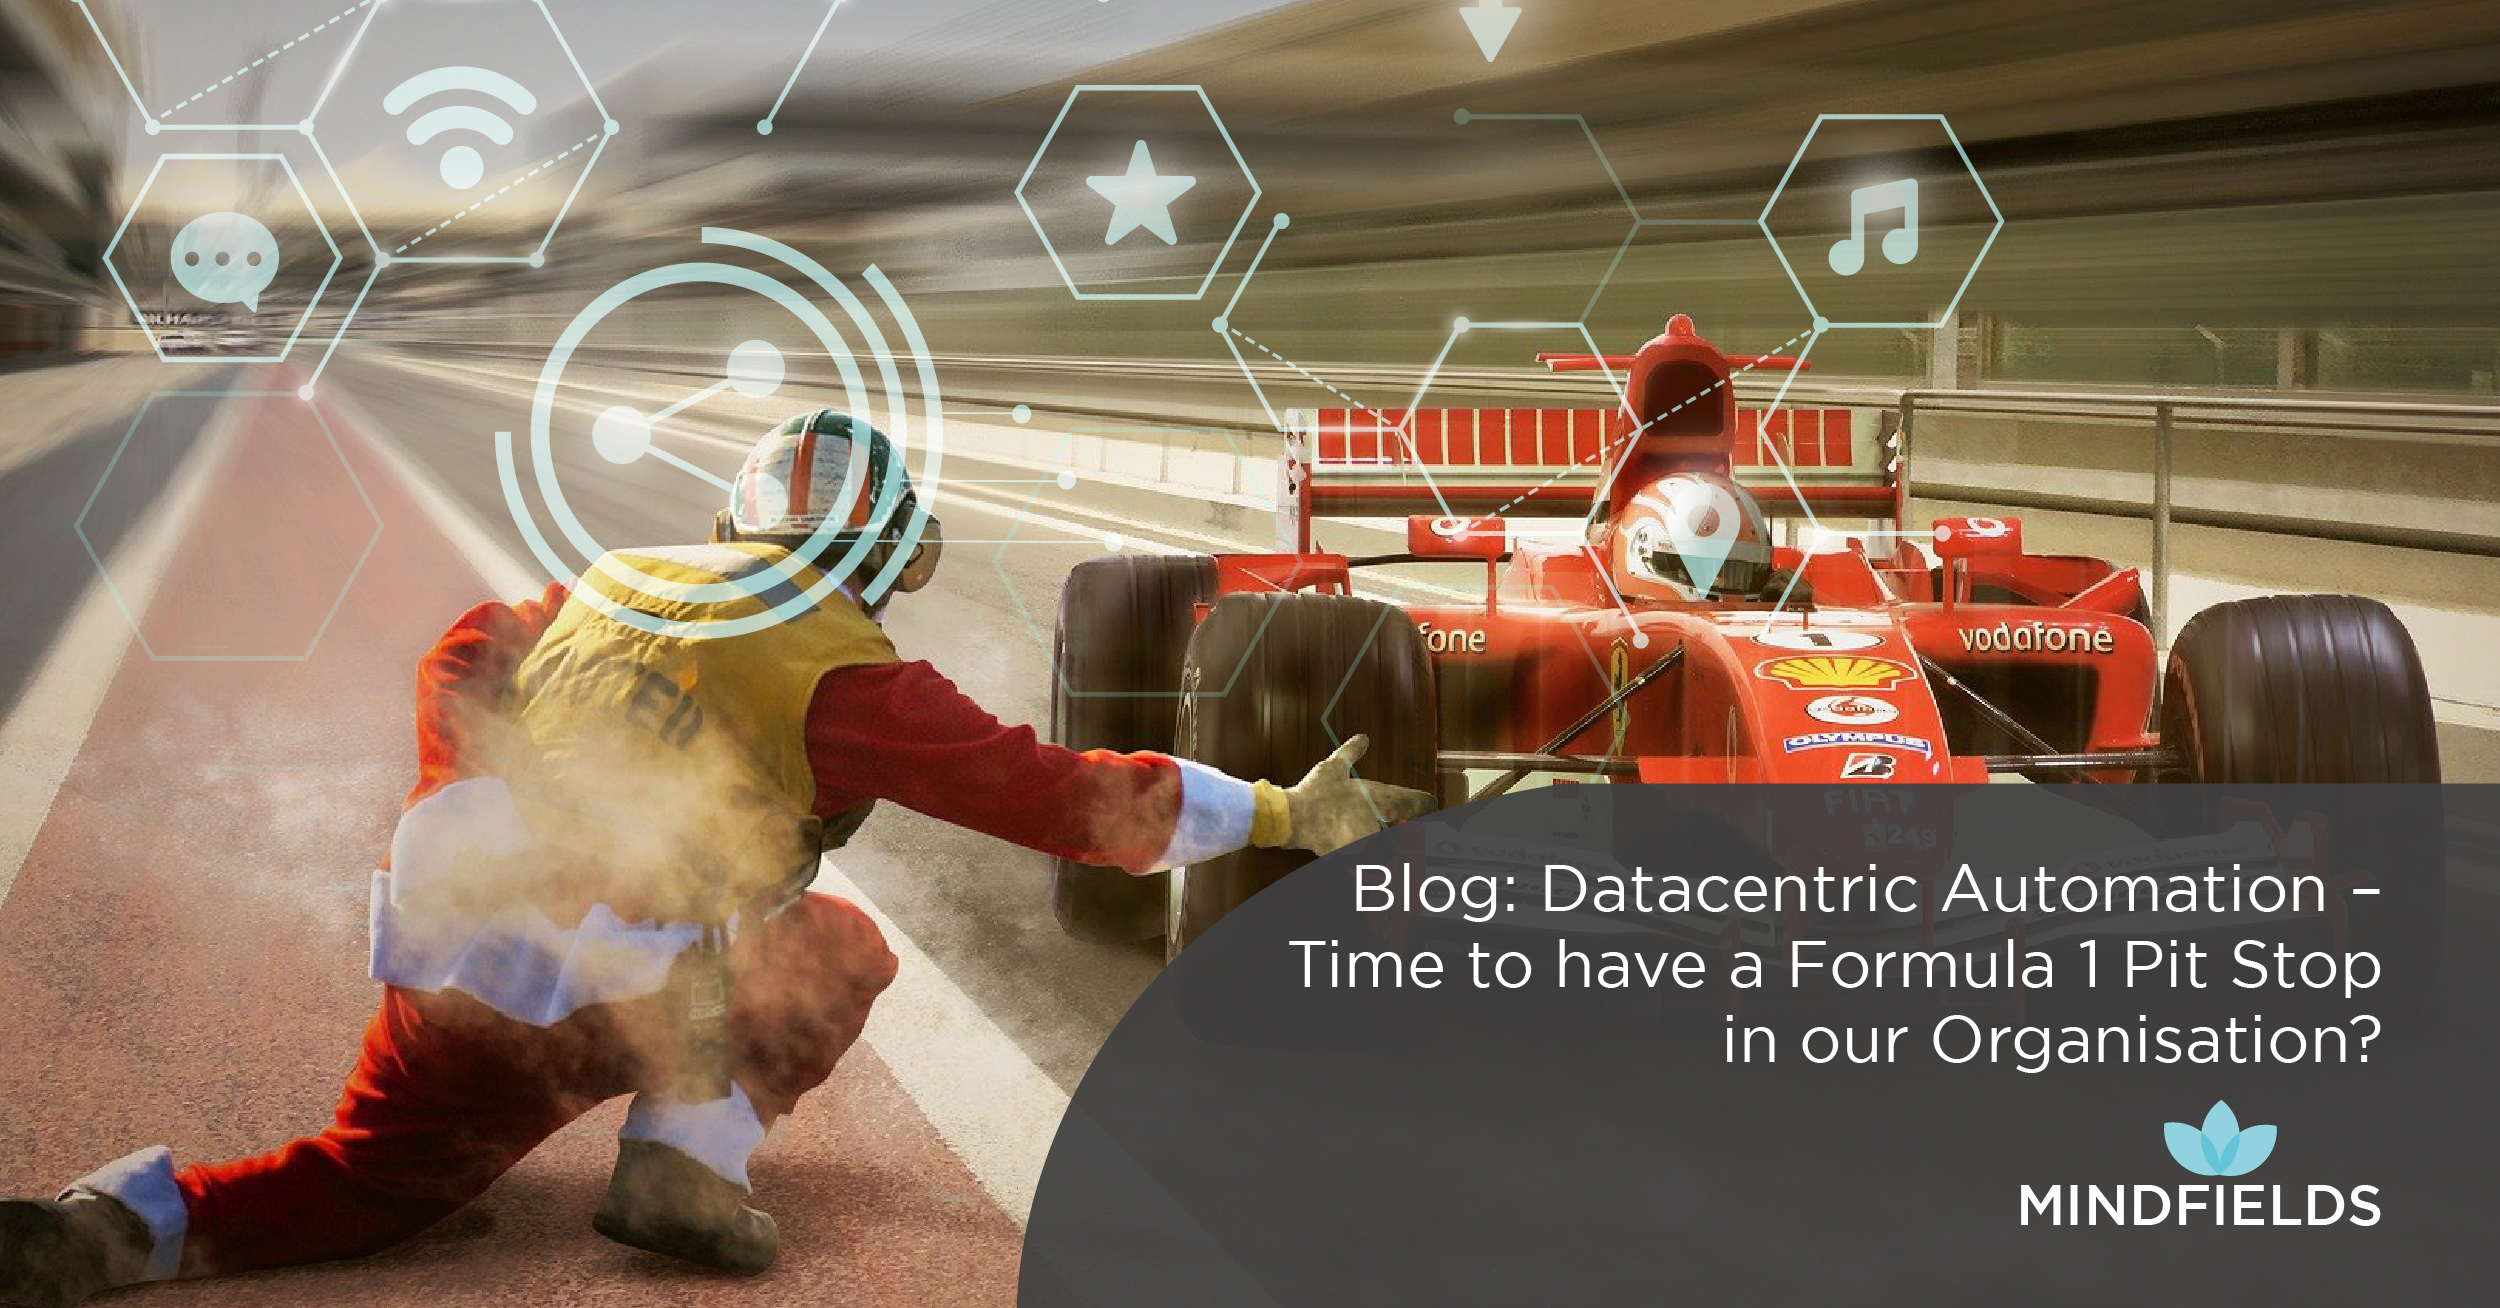 Data Centric Automation – Time to have a Formula 1 Pit Stop in our Organisation?